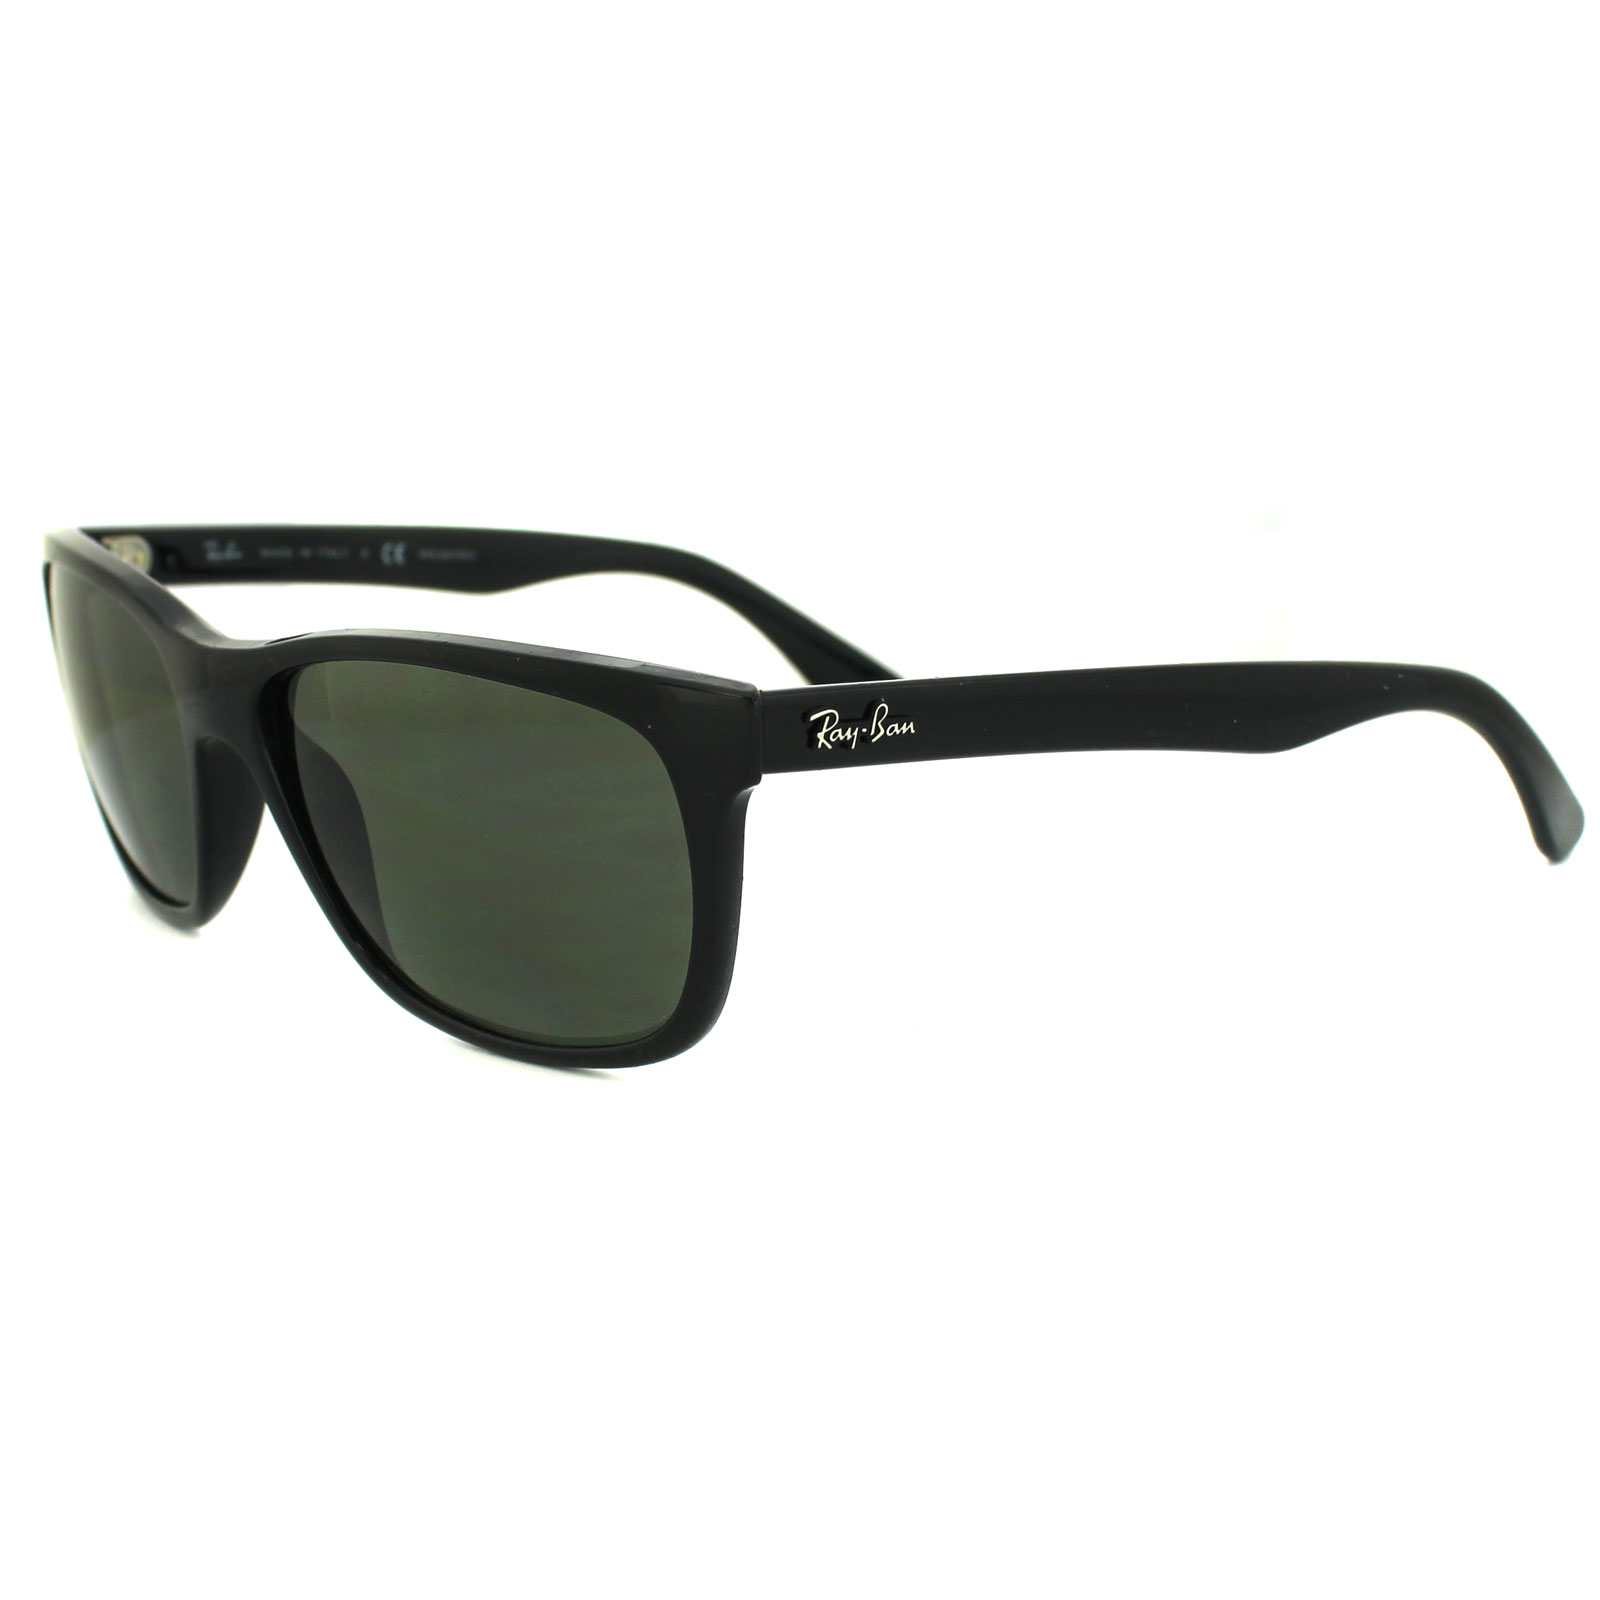 e4b4da51d86 Cheap Ray-Ban 4181 Sunglasses - Discounted Sunglasses